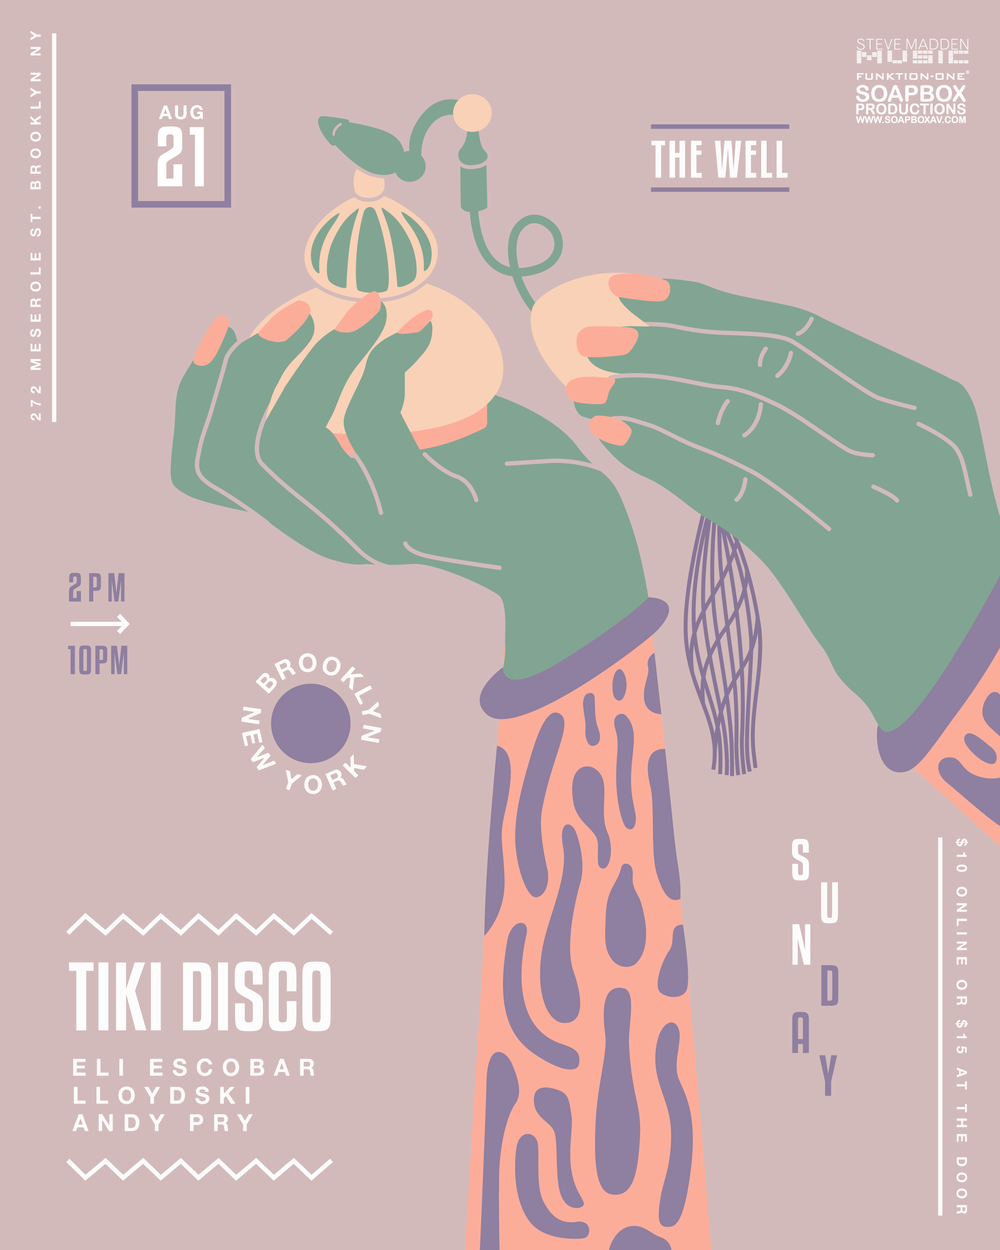 2016-08-09_tikidisco_poster_01 copy.png